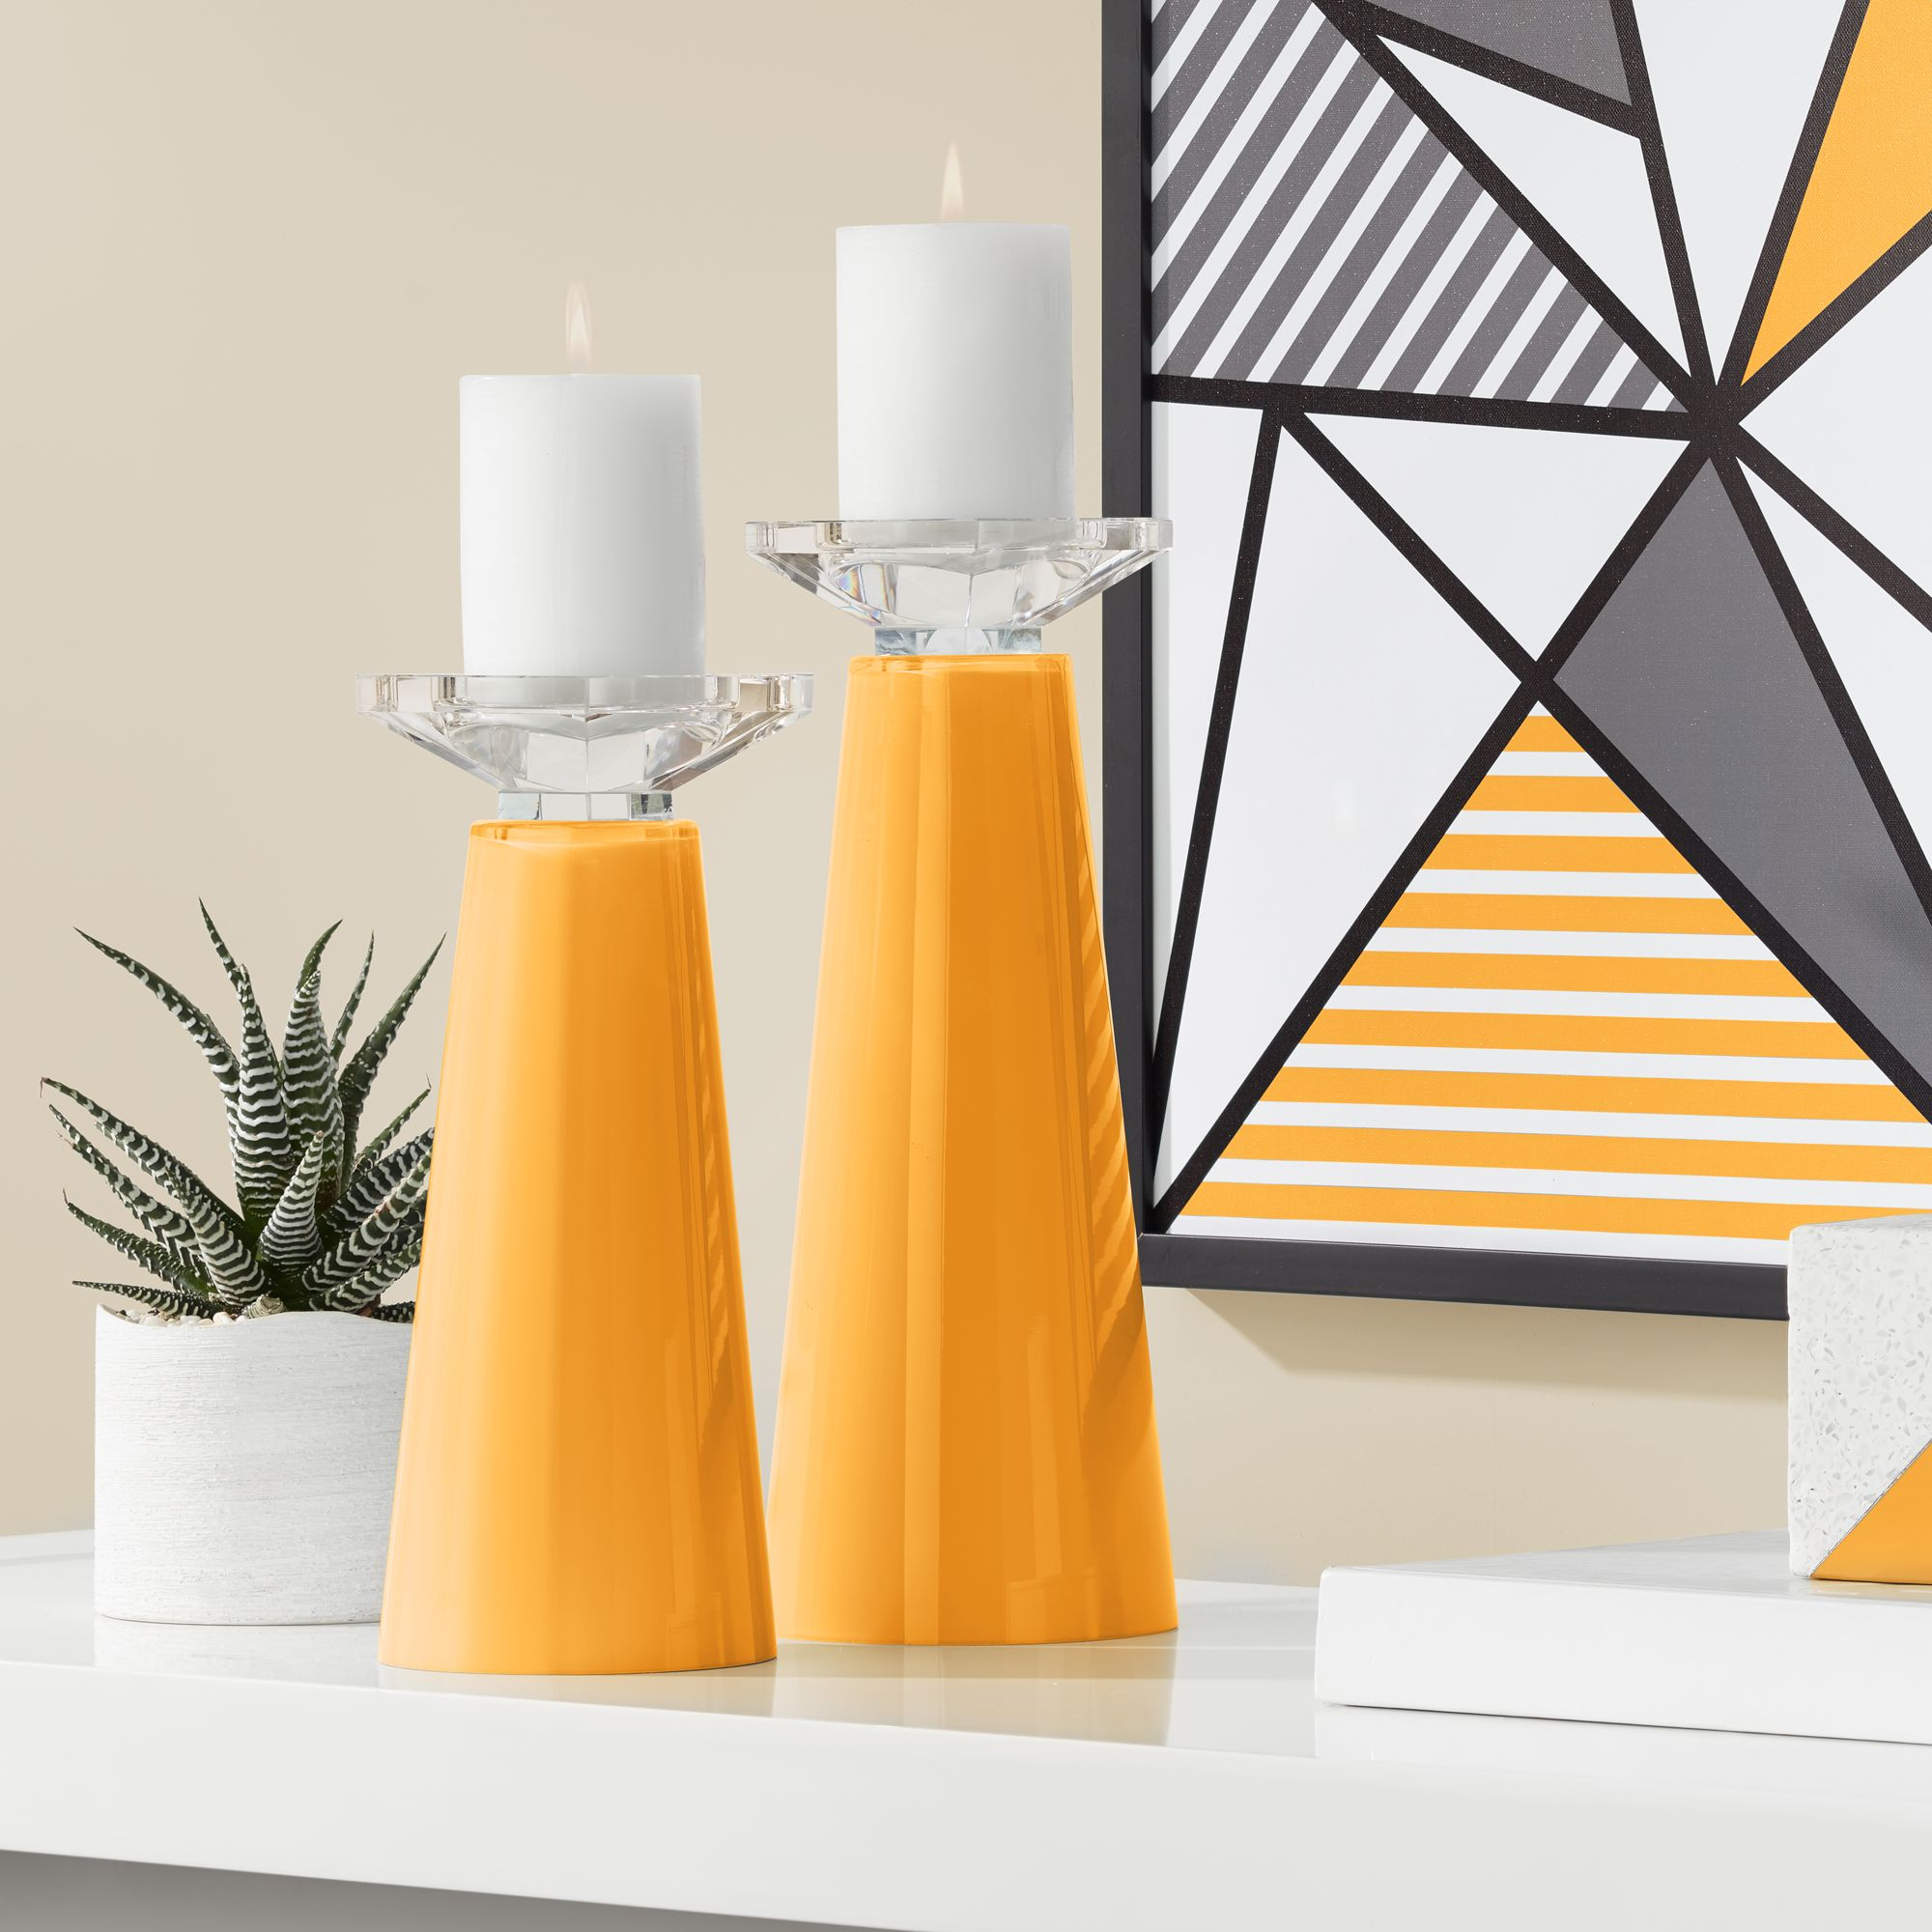 Plus Meghan Naval Glass Pillar Candle Holders Set of 2 Color